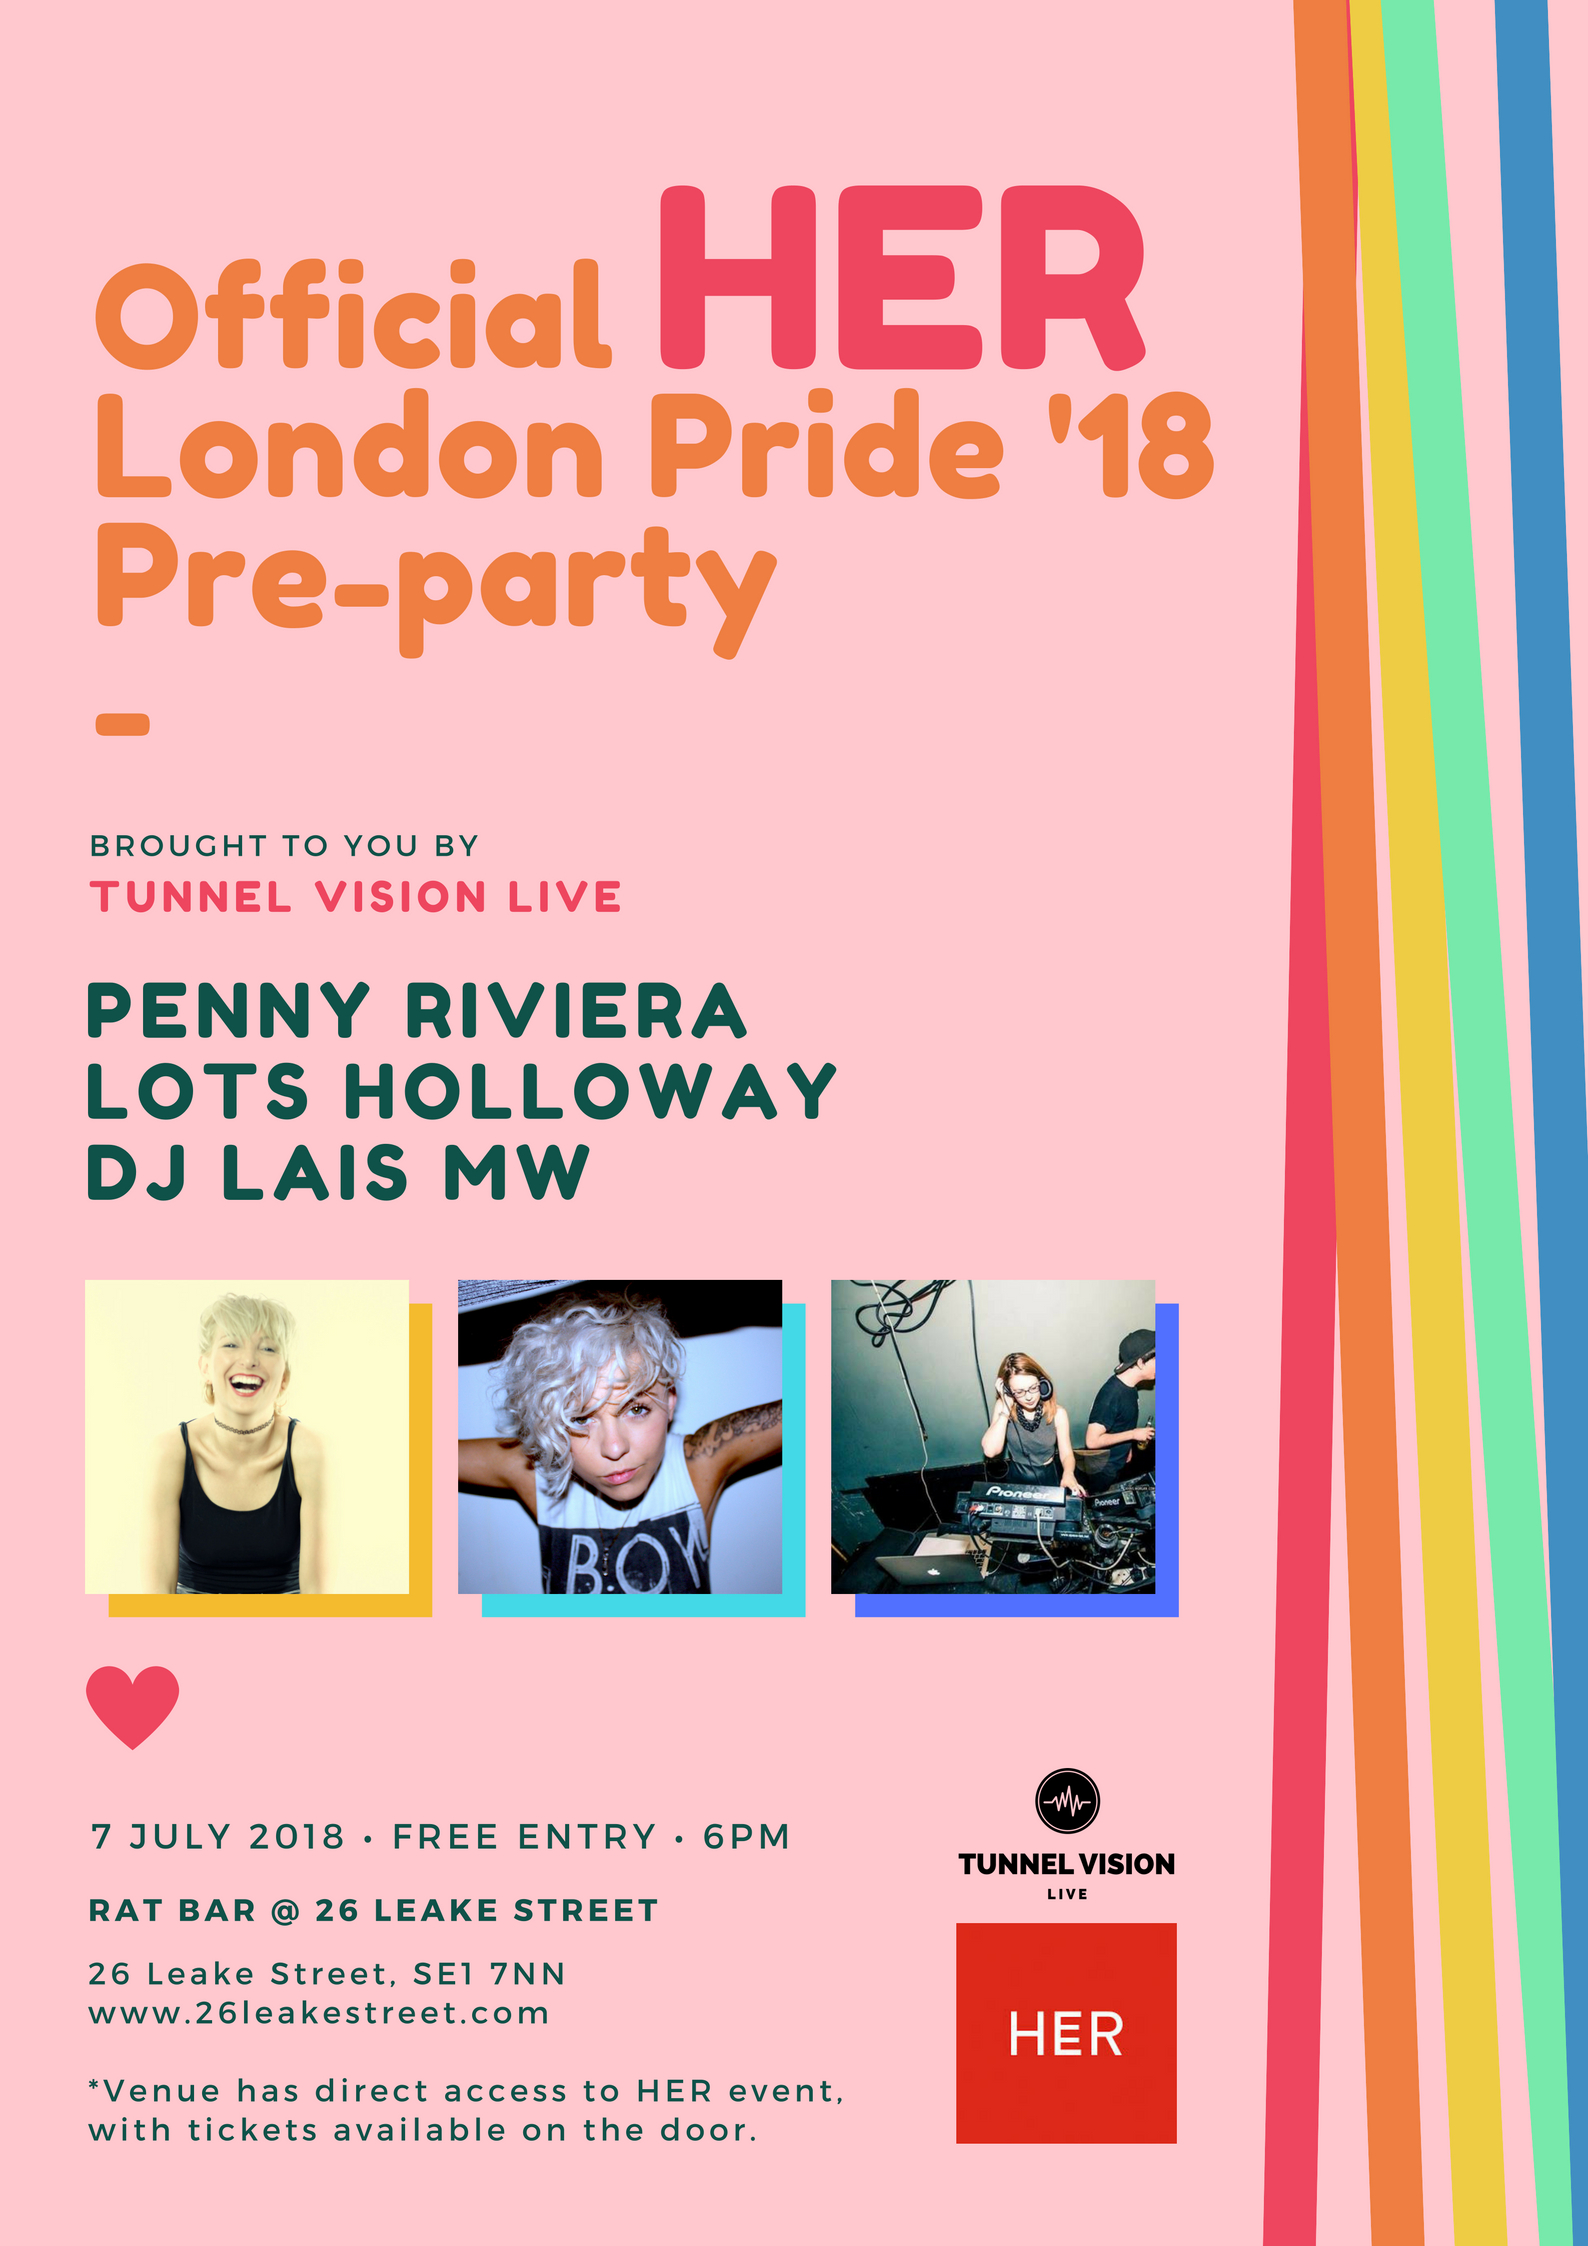 OfficialLondon Pride '18Pre-party Final.jpg